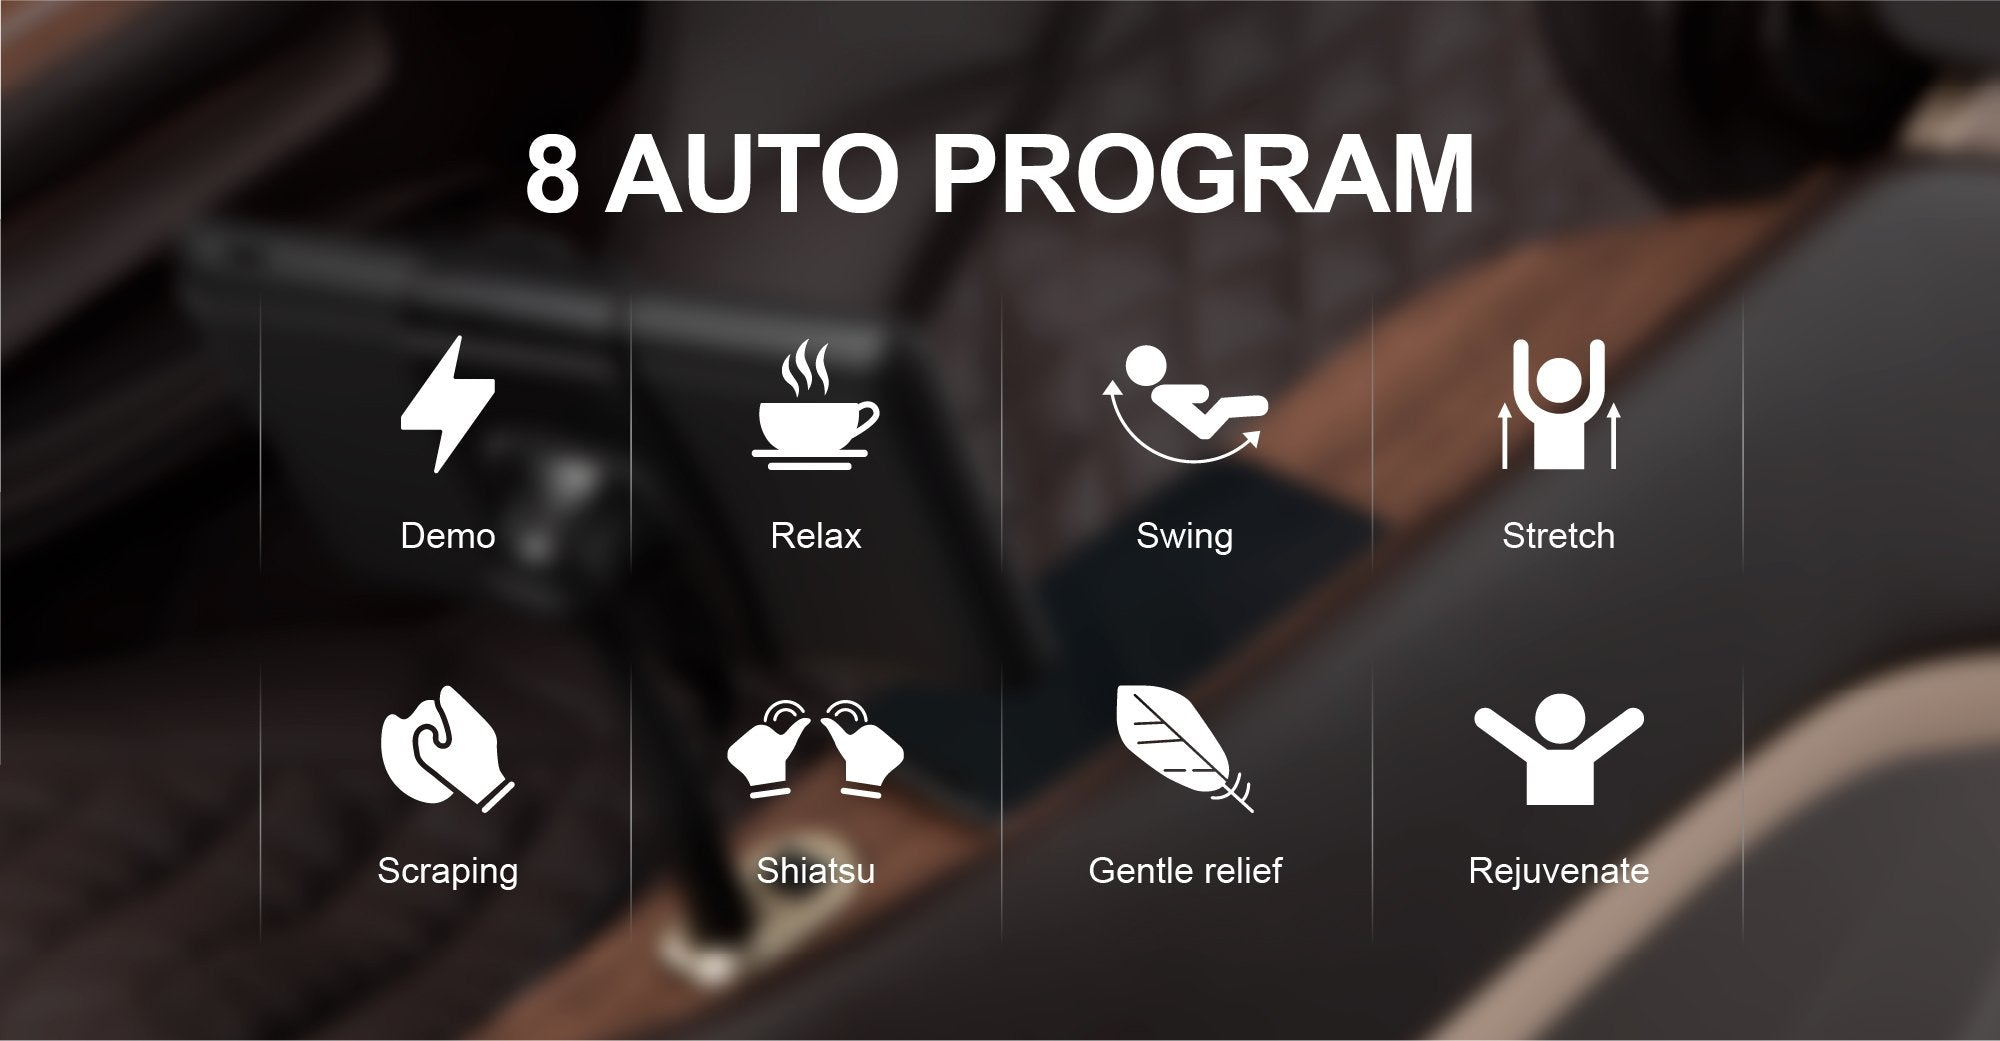 Image of 8 auto programs